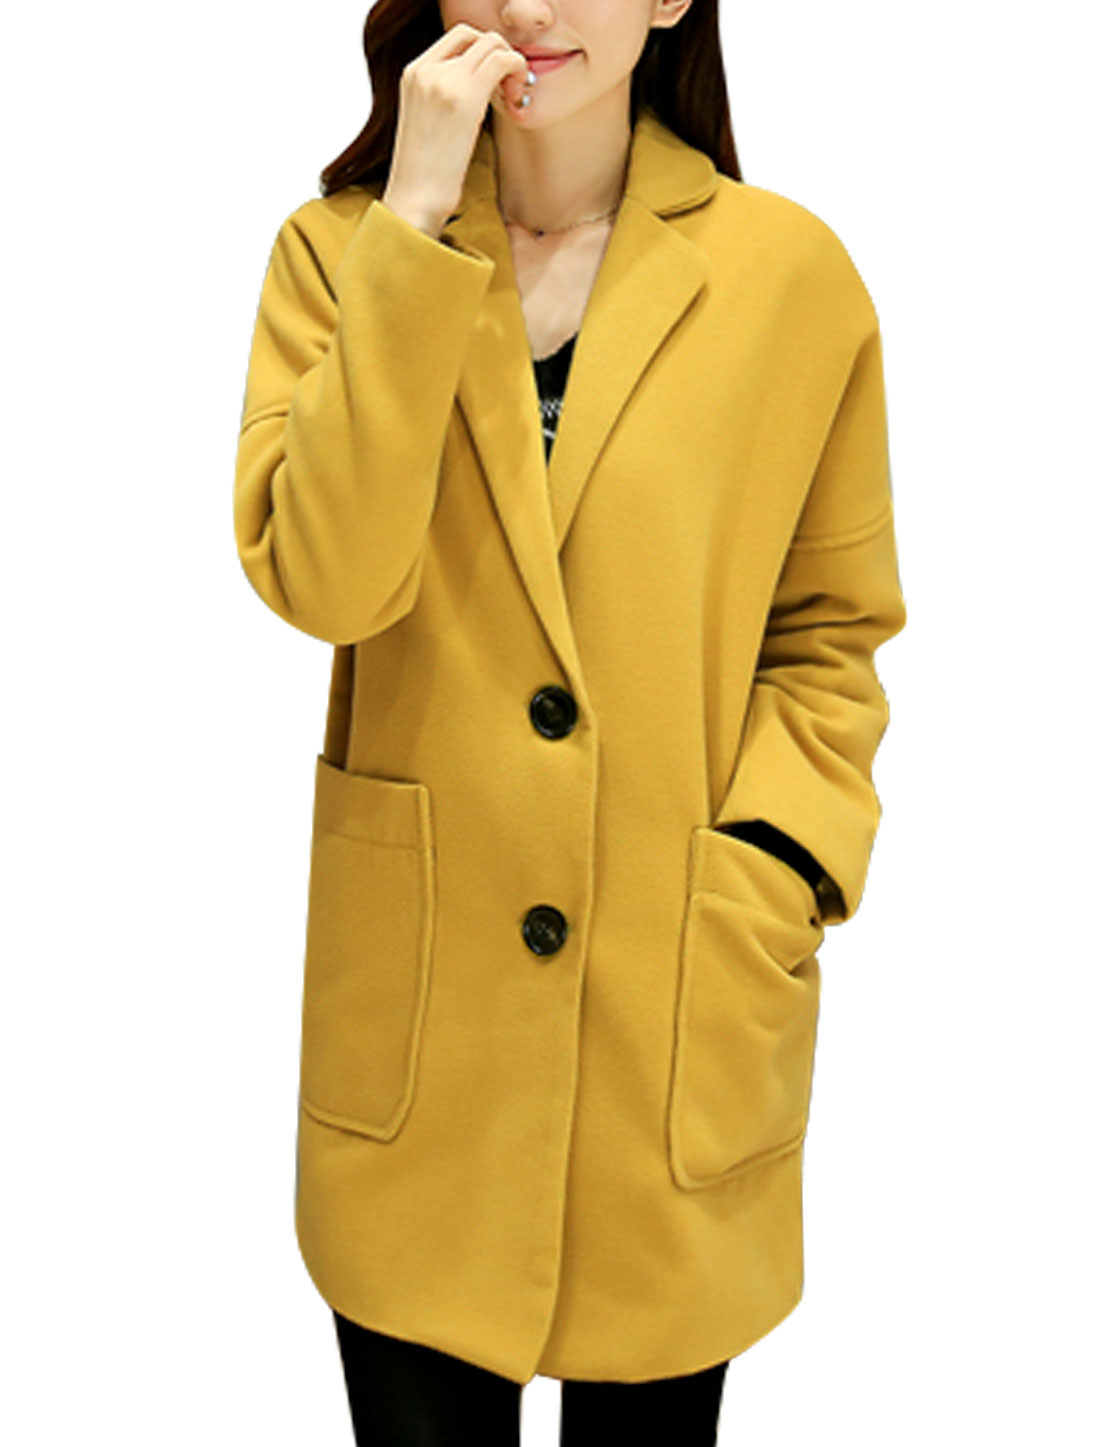 Women Notched Lapel Bat Sleeve Button Closure Worsted Coat Ochre S